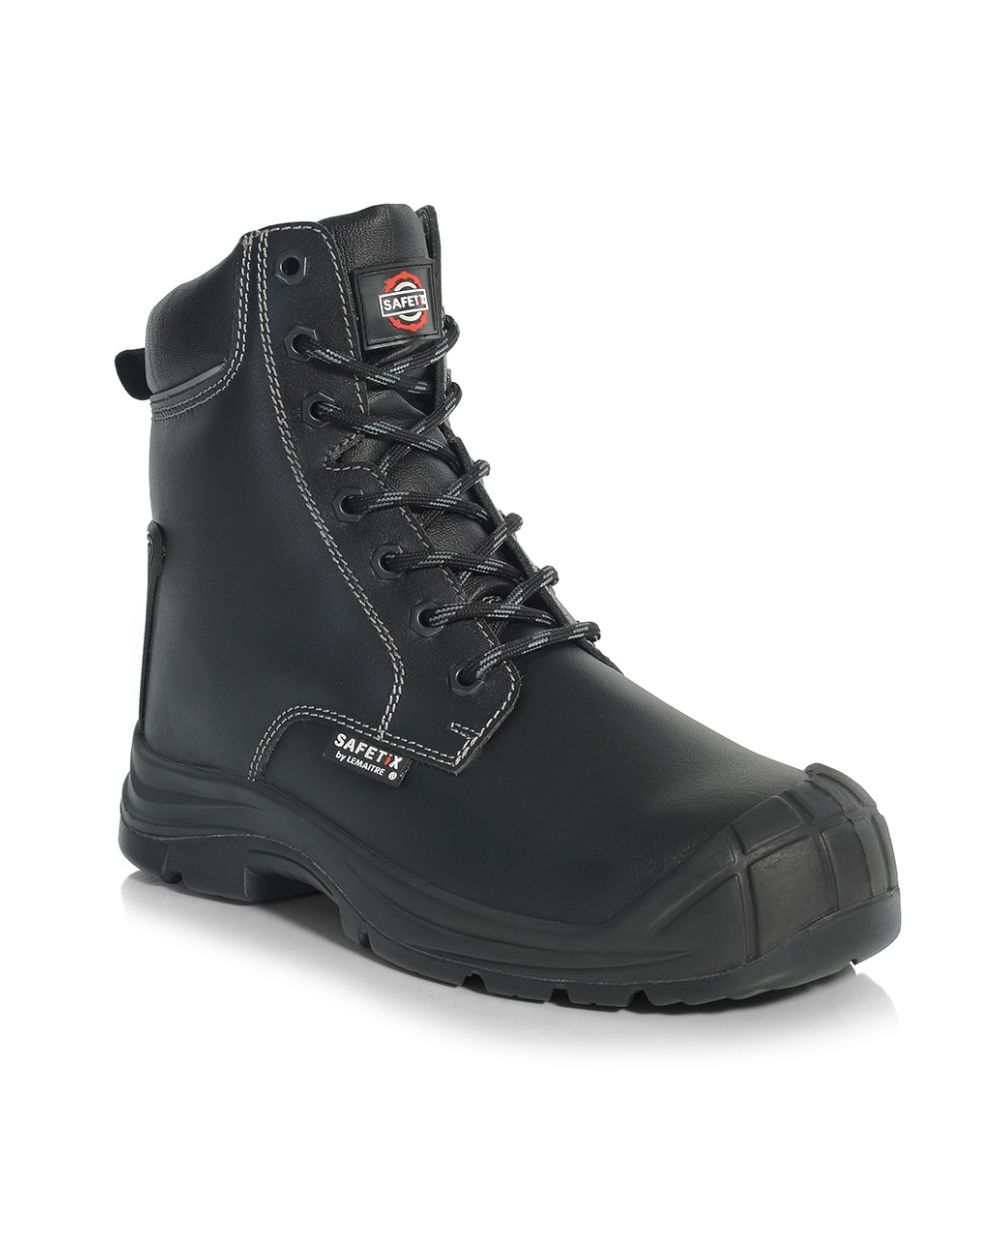 Columba – PU/Rubber Combat Boot c/w Cap + Zip